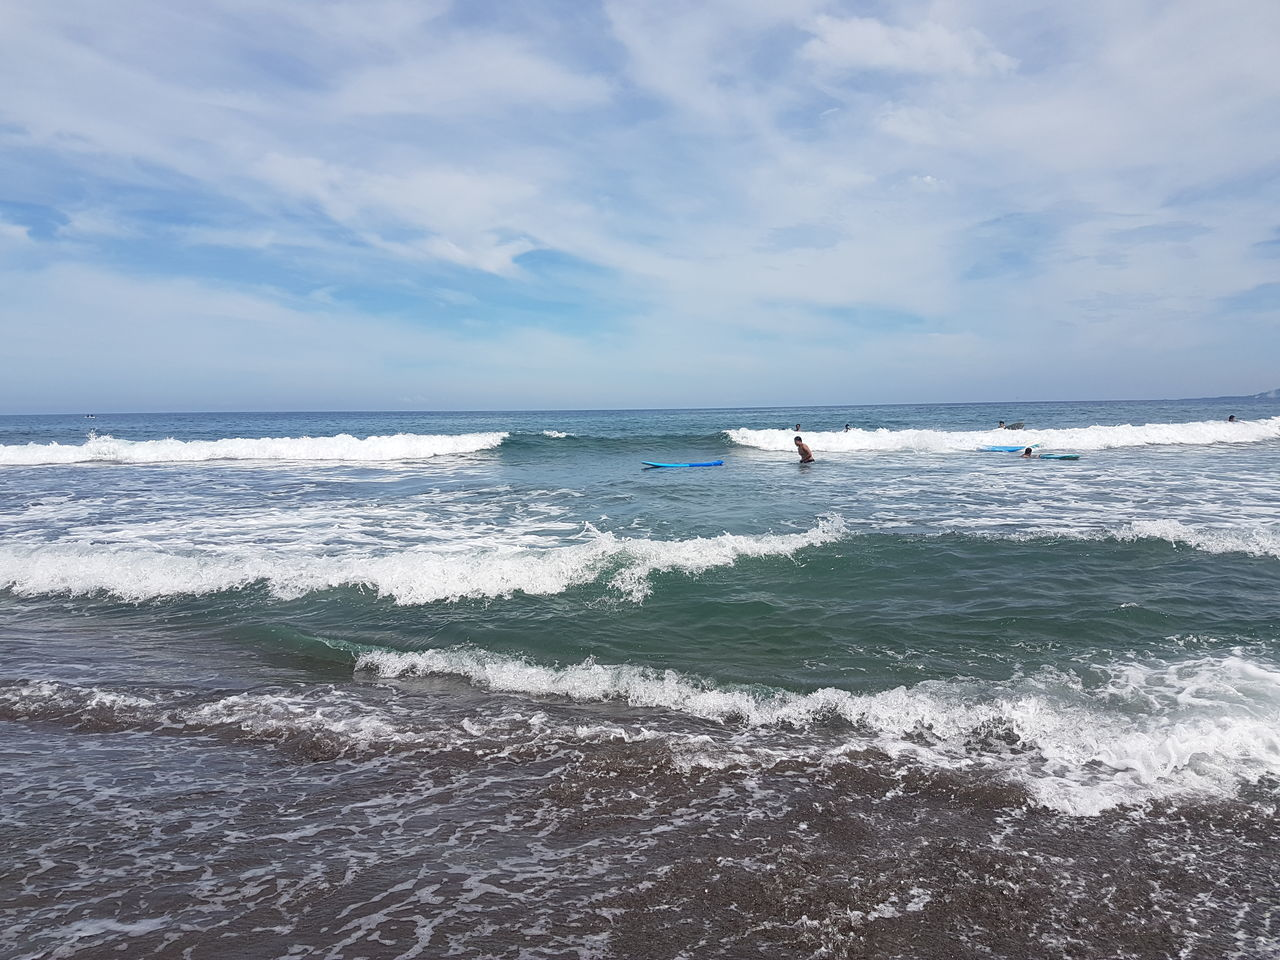 sea, wave, horizon over water, water, nature, sky, scenics, beauty in nature, cloud - sky, real people, adventure, vacations, tranquility, surfing, beach, extreme sports, sport, day, motion, men, outdoors, one person, people